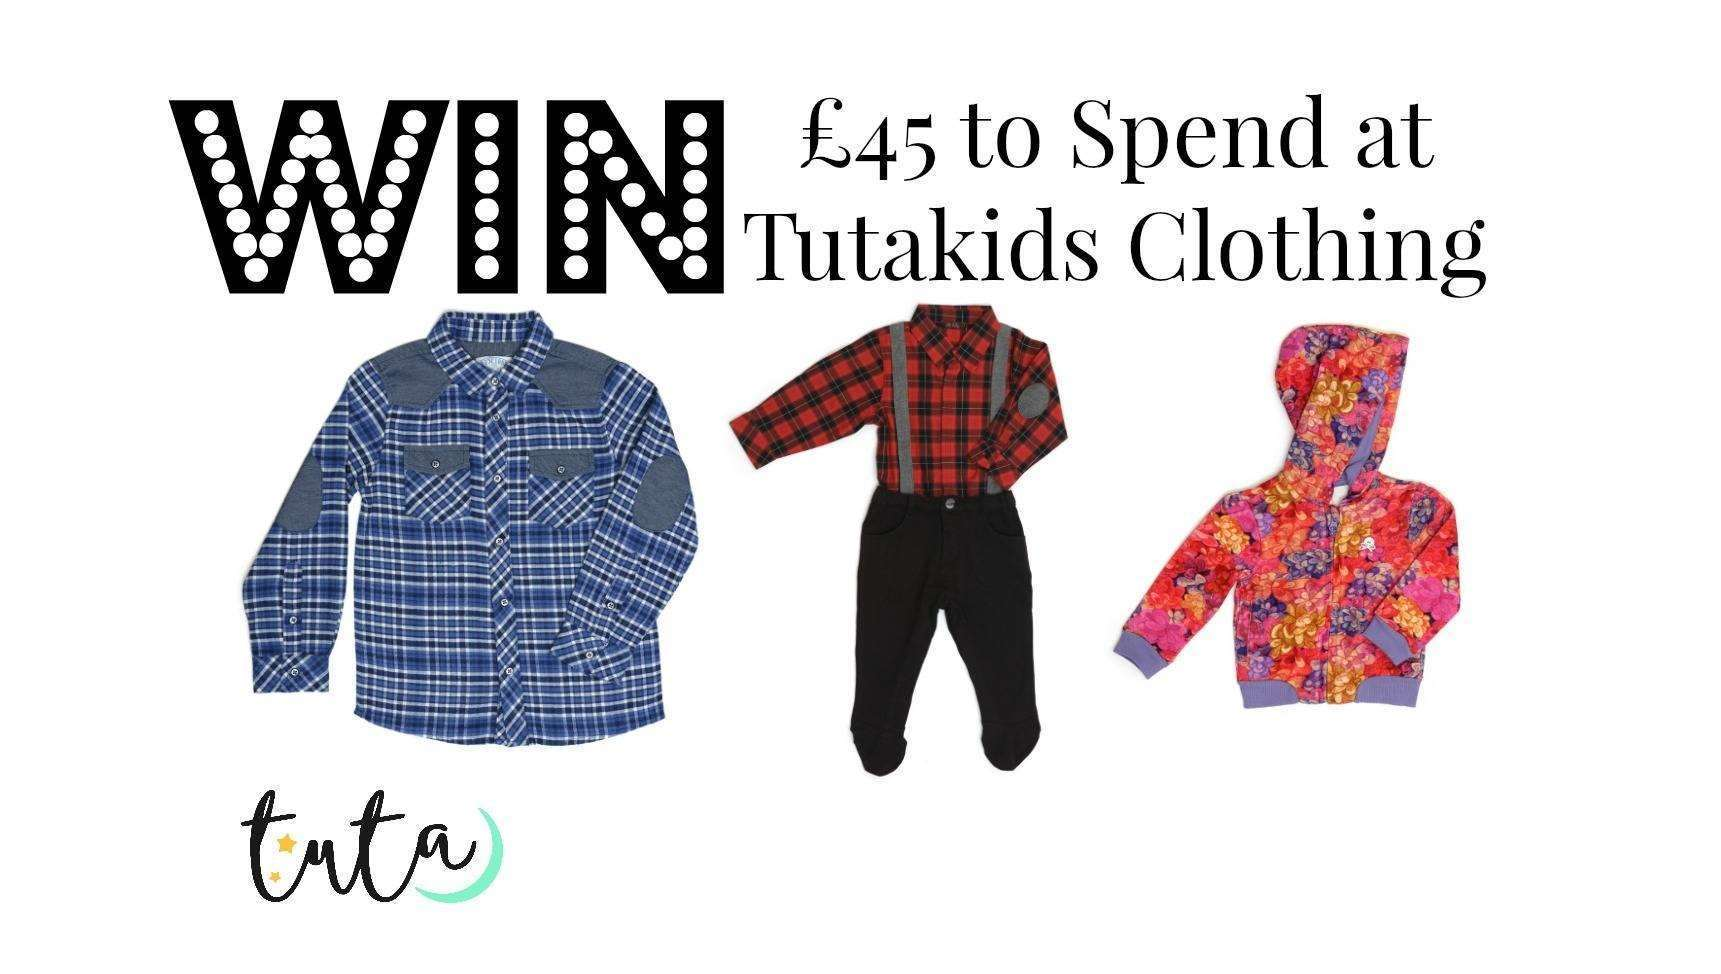 WIN £45 Voucher to Spend at TutaKids Clothing, Tutakids%, uncategorised%